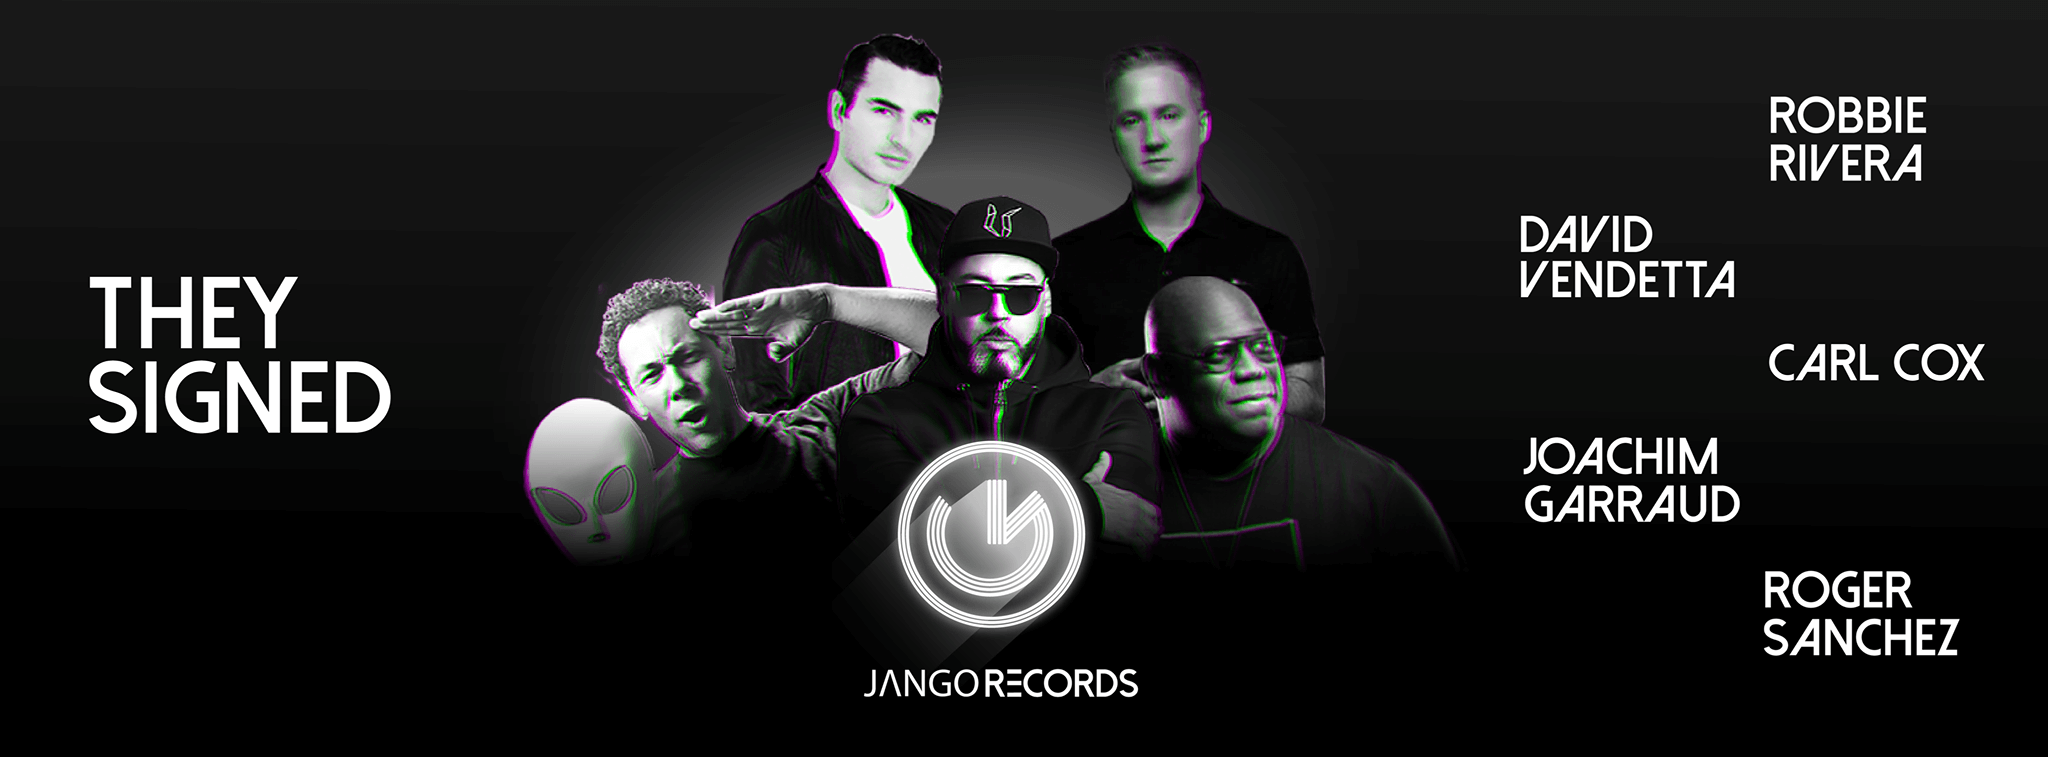 Robbie Rivera, David Vendetta, Carl Cox, Joachim Garraud, Roger Sanchez signed on Jango Records.